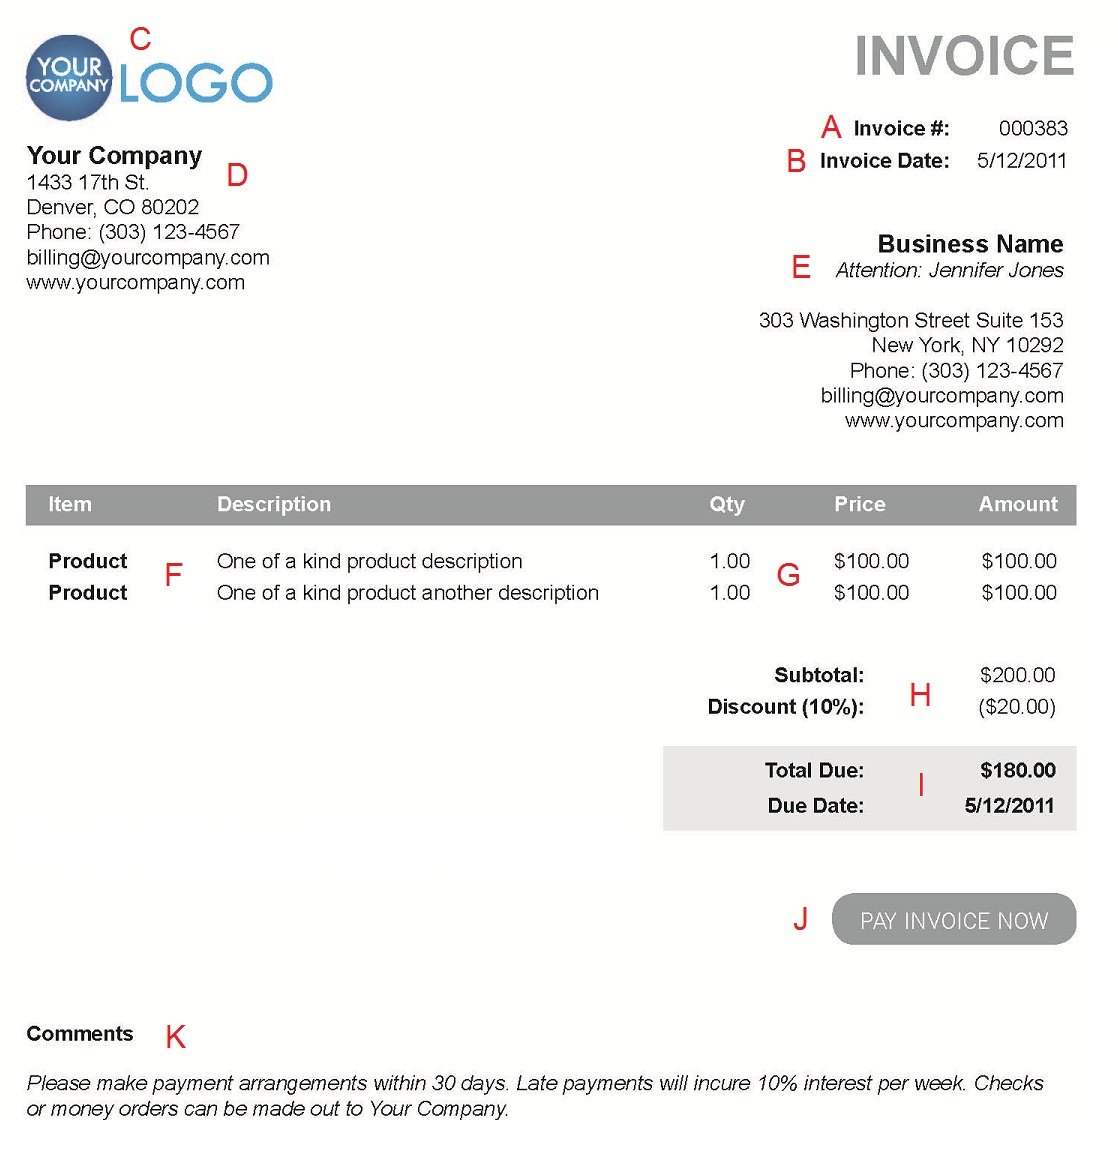 Reliefworkersus  Pleasing The  Different Sections Of An Electronic Payment Invoice With Engaging A  With Endearing Invoice Due Also Quickbooks Email Invoice In Addition Free Work Invoice Template And Online Invoices Template Free As Well As Real Invoice Price New Cars Additionally Paid Invoice Receipt Template From Paysimplecom With Reliefworkersus  Engaging The  Different Sections Of An Electronic Payment Invoice With Endearing A  And Pleasing Invoice Due Also Quickbooks Email Invoice In Addition Free Work Invoice Template From Paysimplecom